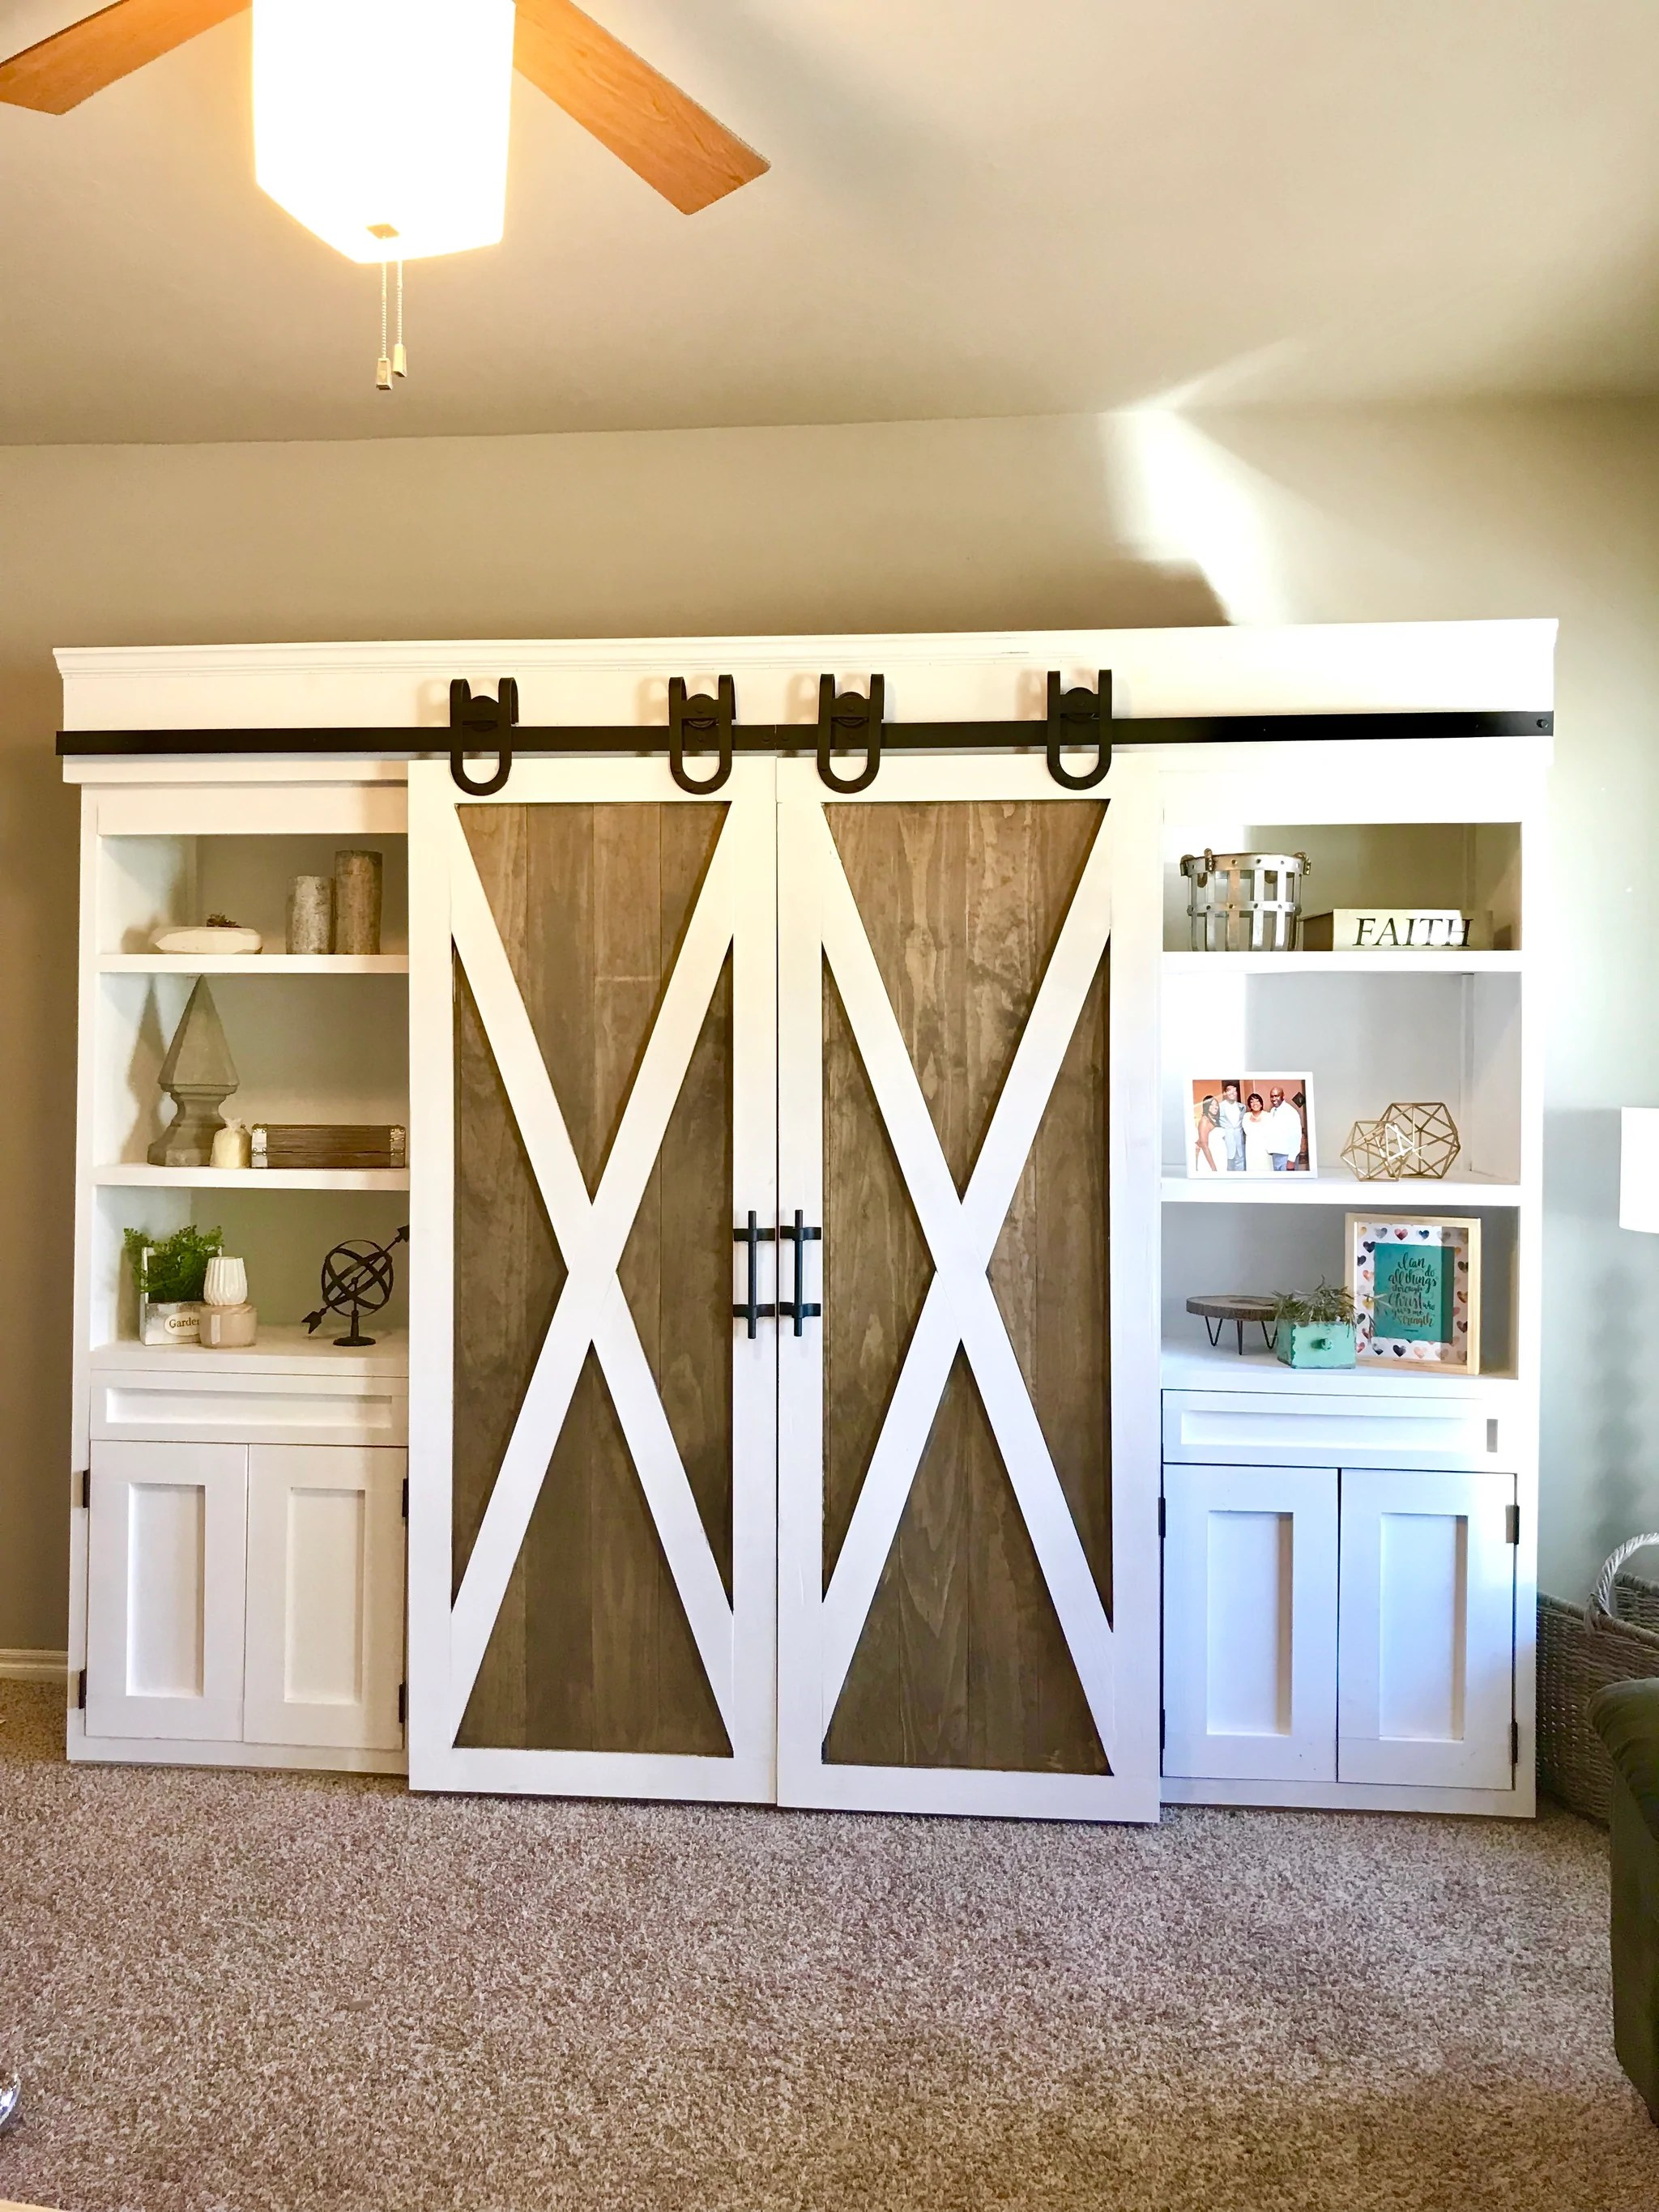 media center living room pictures of wall colors sliding barn door handmade haven for the home featuring artisan horseshoe hardware